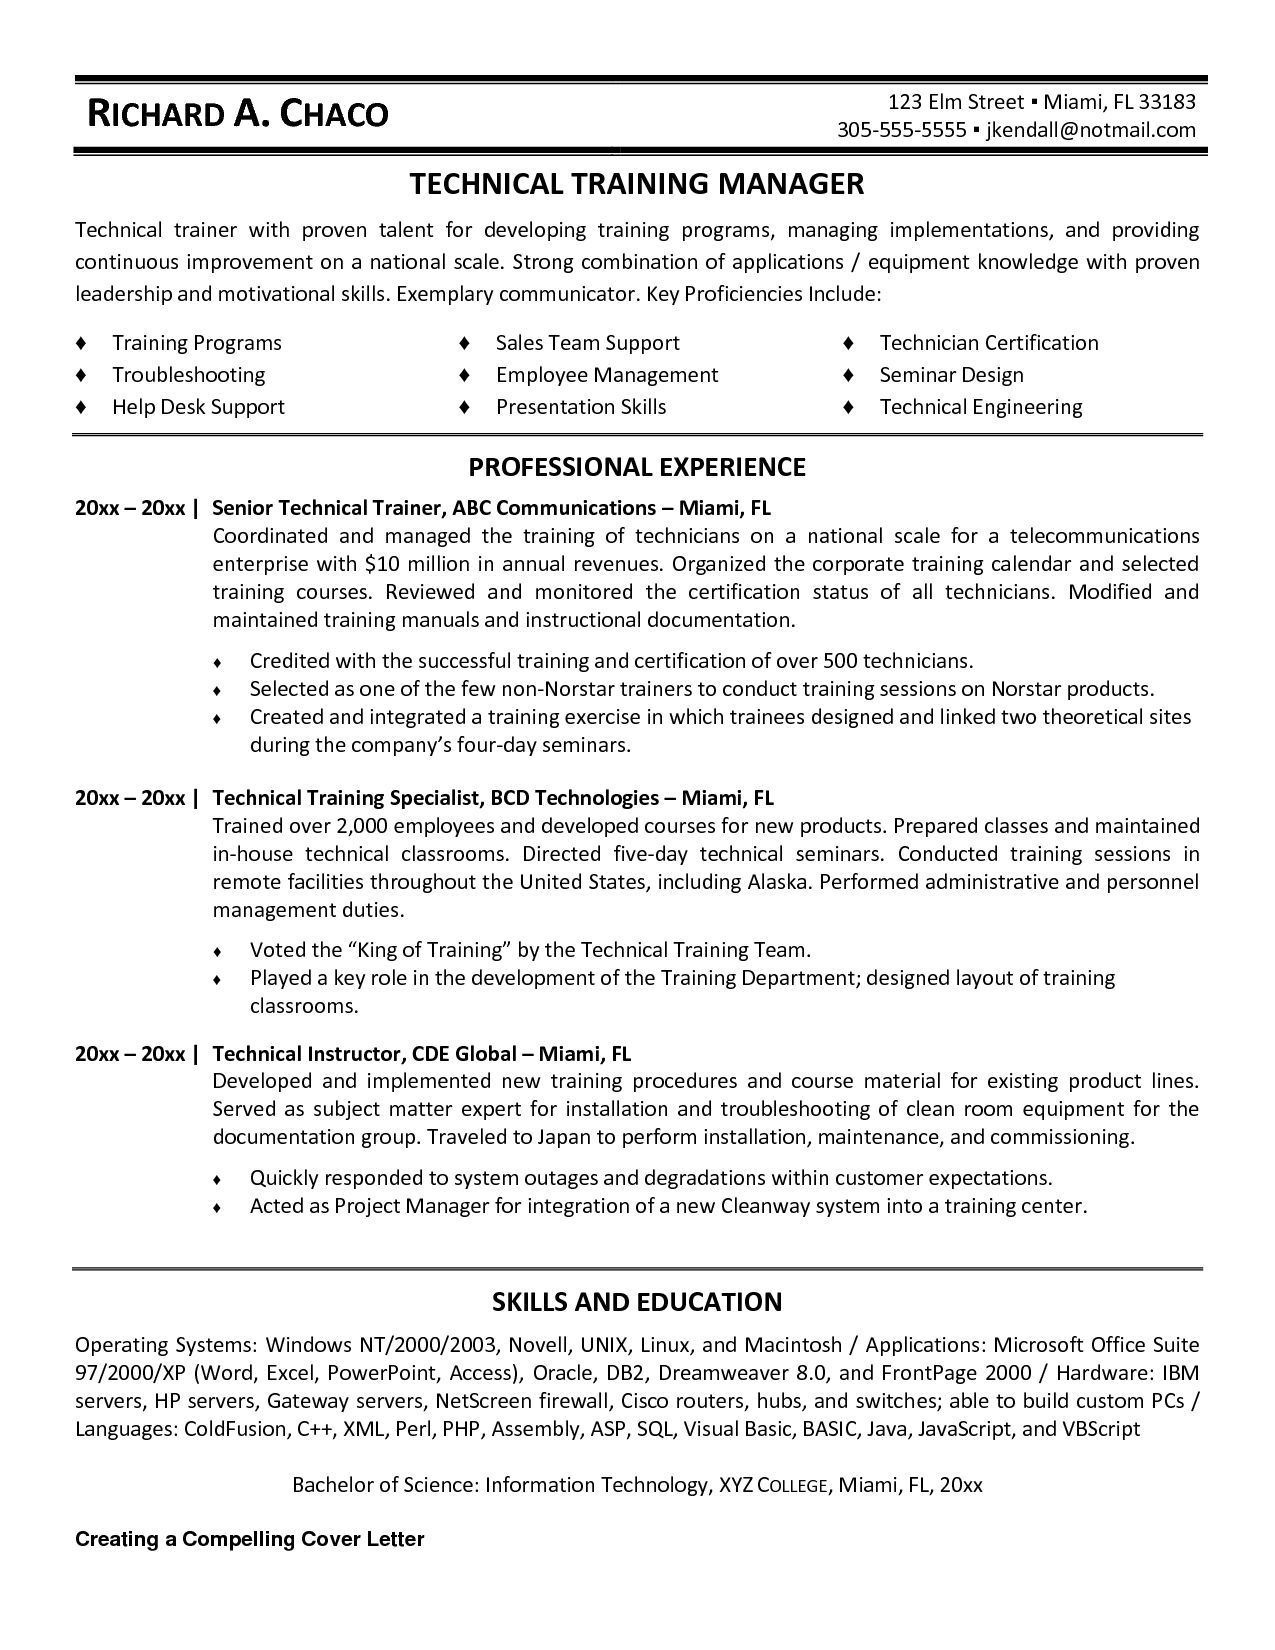 Personal Trainer Resume Objective Personal Trainer Resume Sample Gallery  Photos  Training On Resume